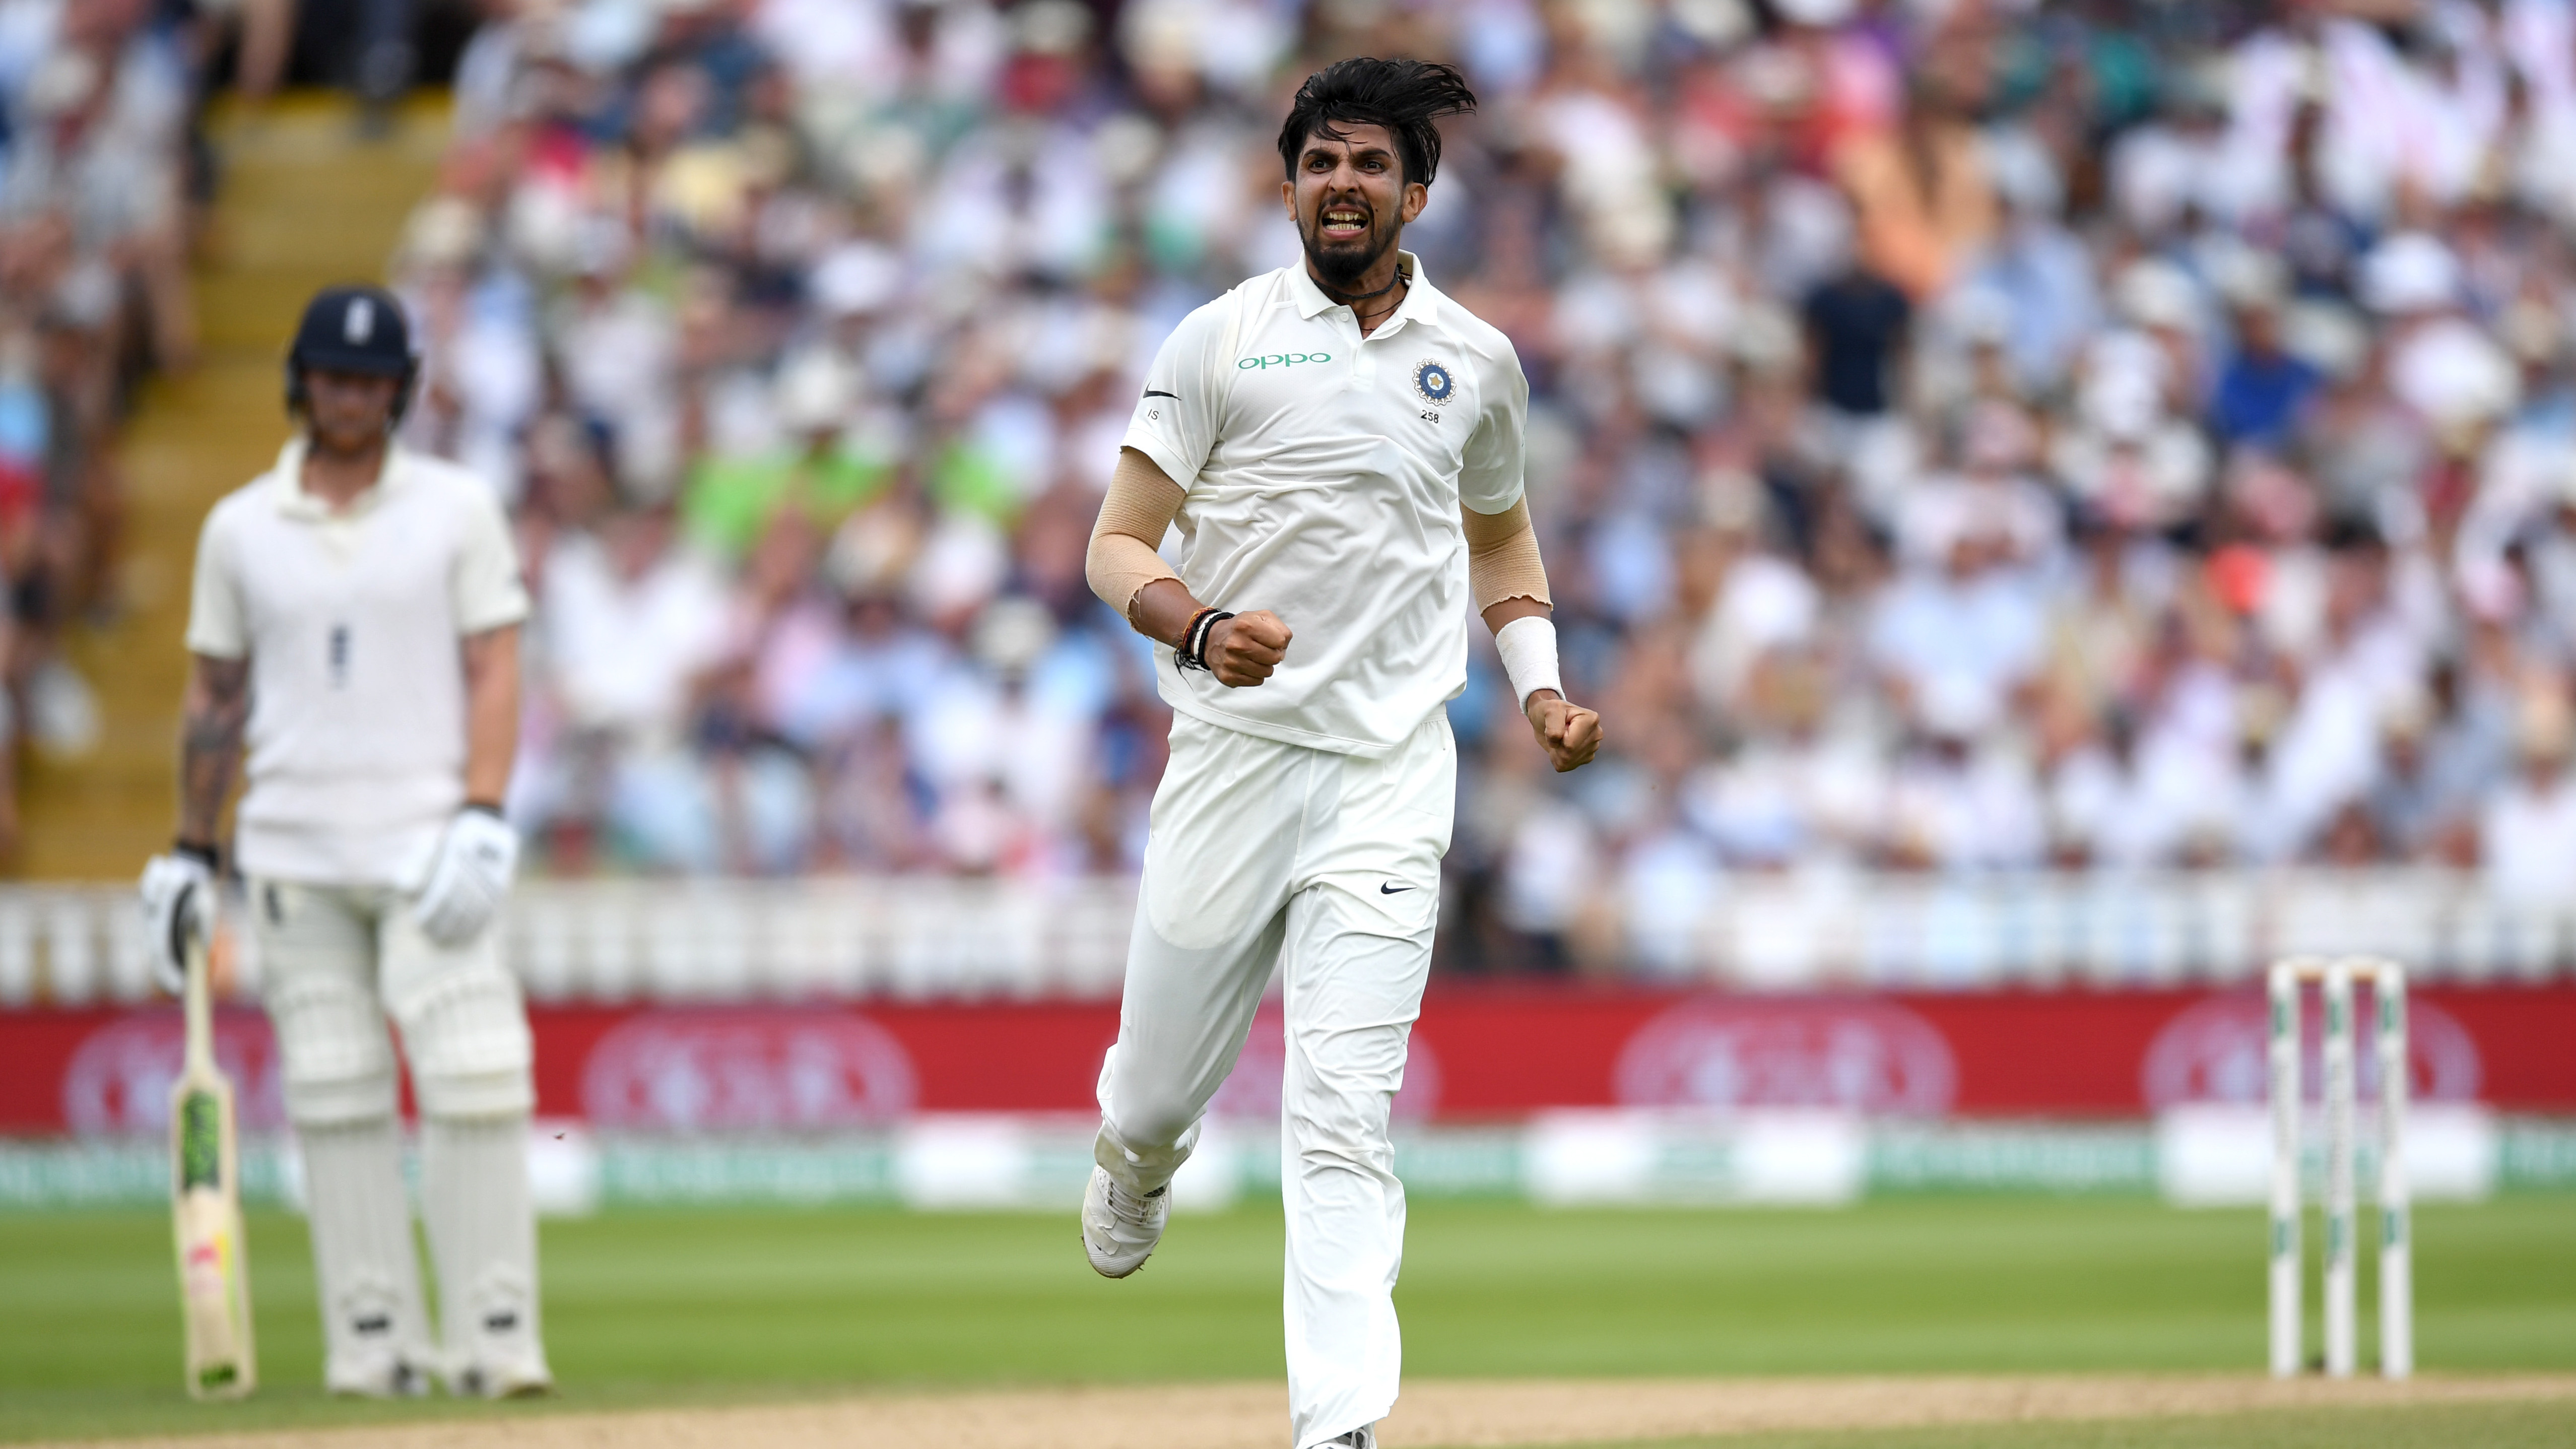 ENG vs IND 2018: I got tired of the defensive bowler tag, says Ishant Sharma